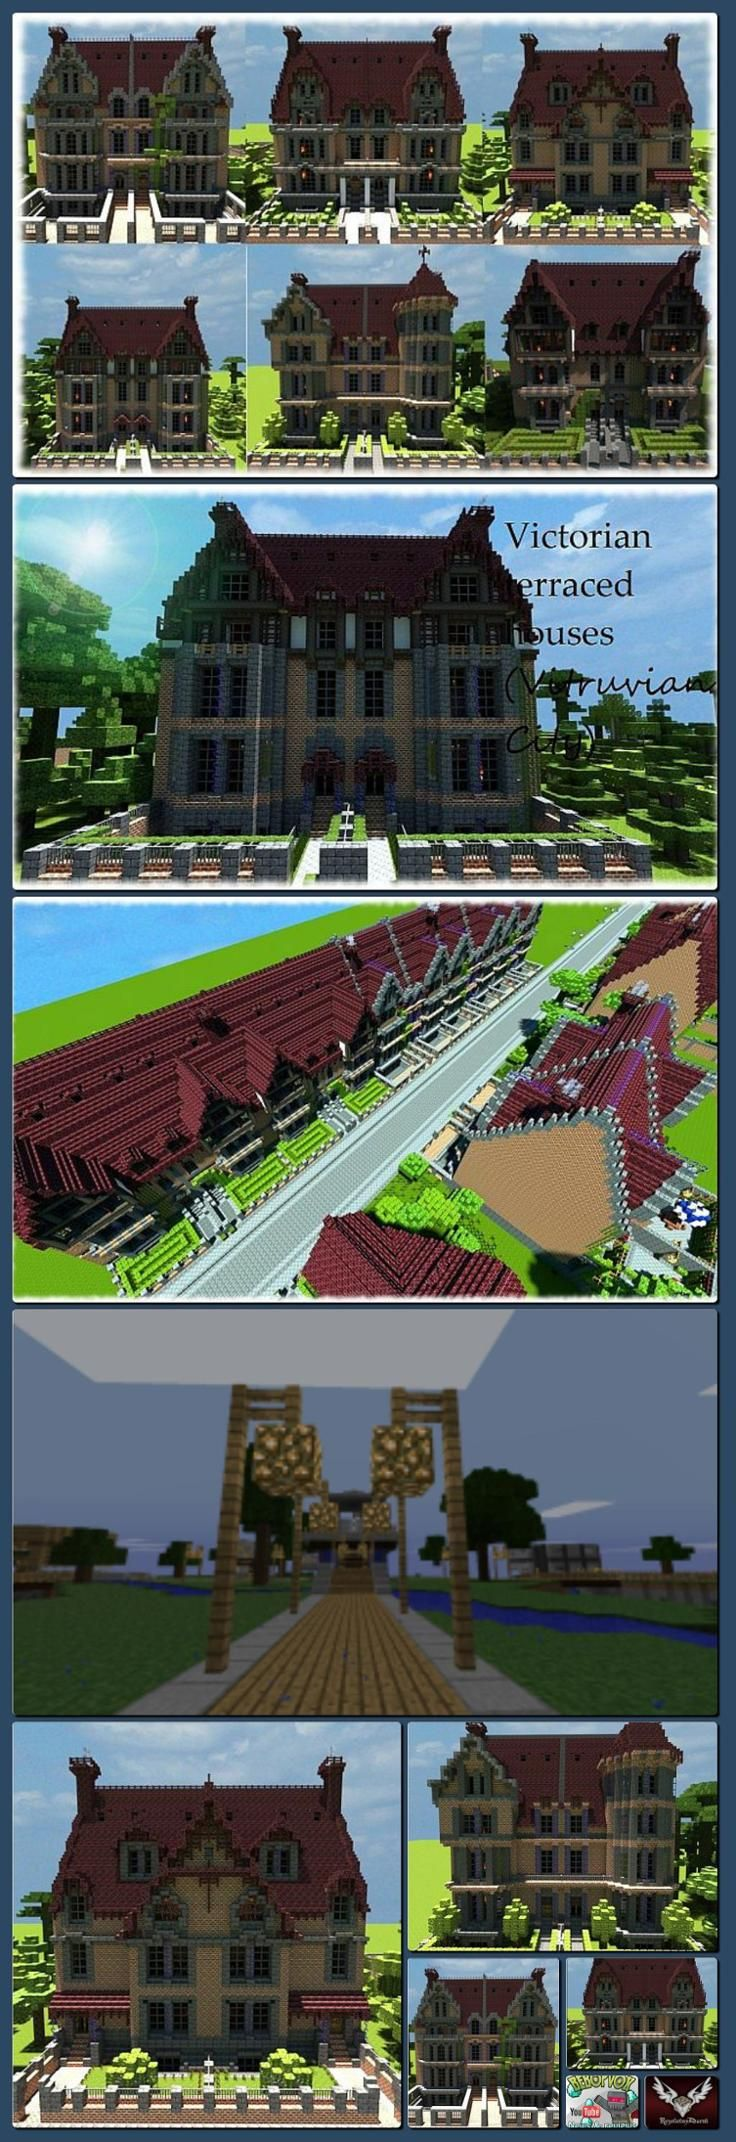 Npc village buildings by coltcoyote on deviantart apps directories - Victorian Terraced Houses Collection Vitruvian City Minecraft Project Collage Made With One Click